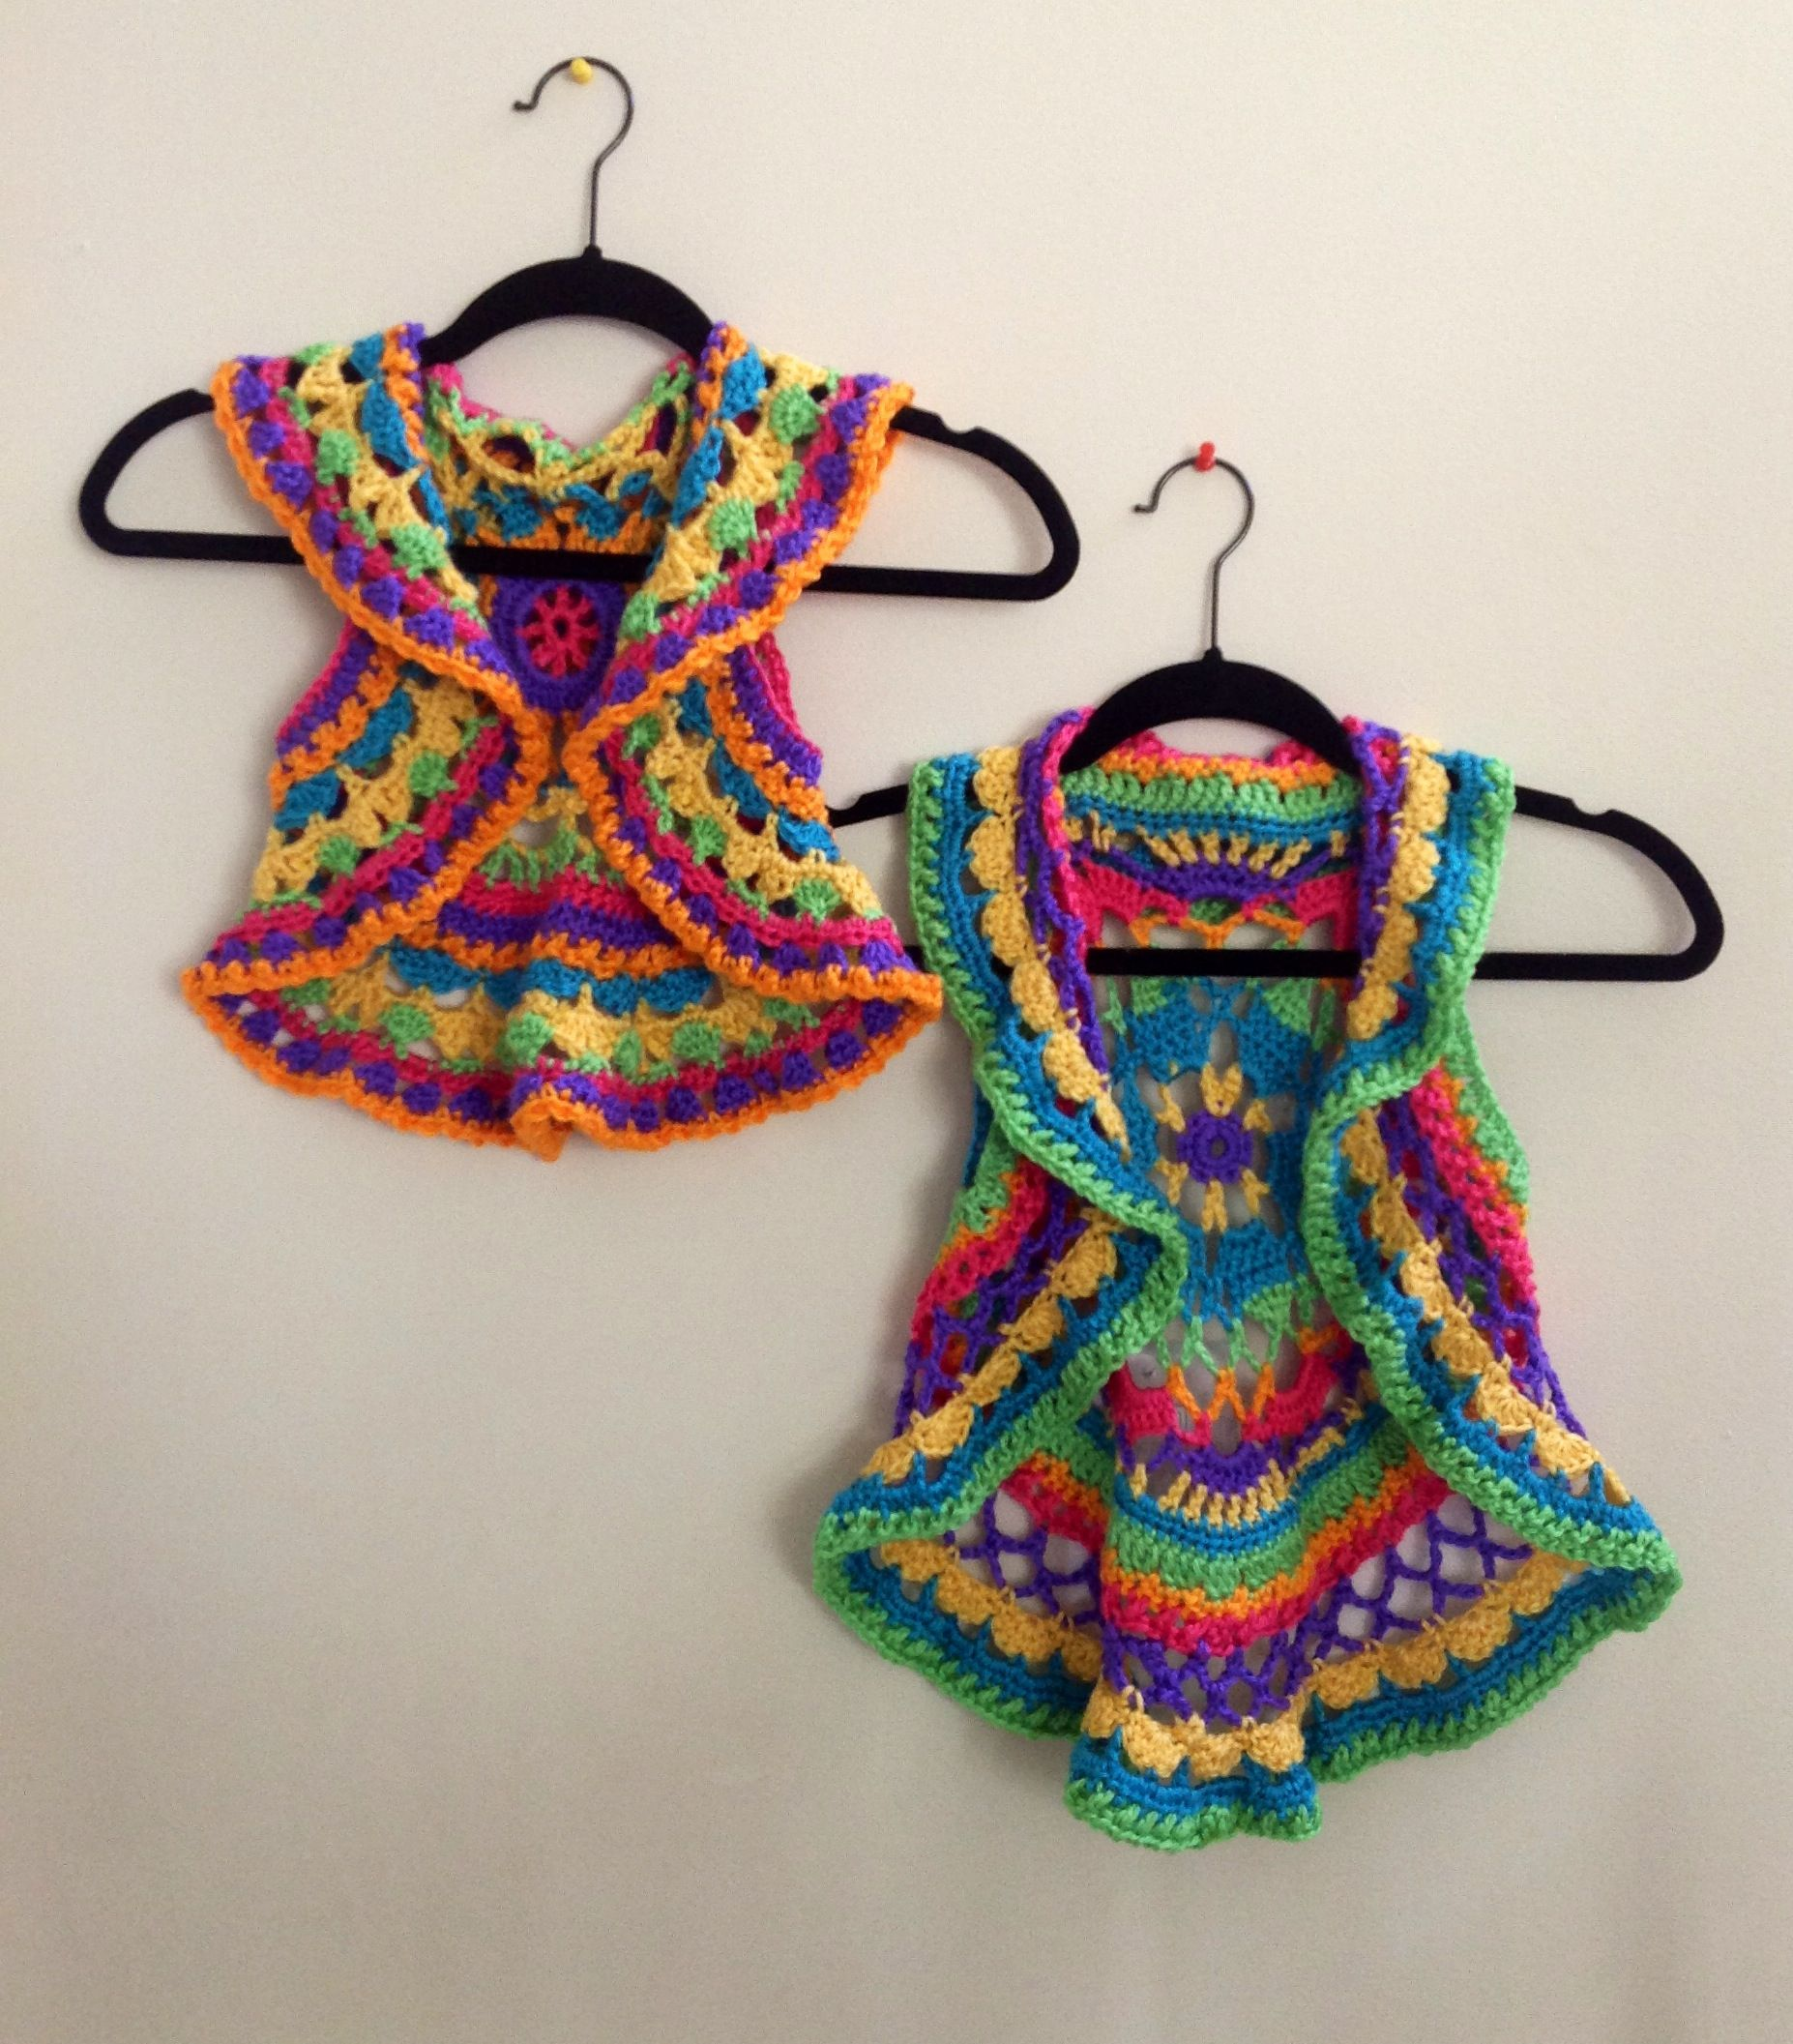 Crochet circular vest size 46 crochet wearables ive created crochet circular vest size 46 bankloansurffo Image collections